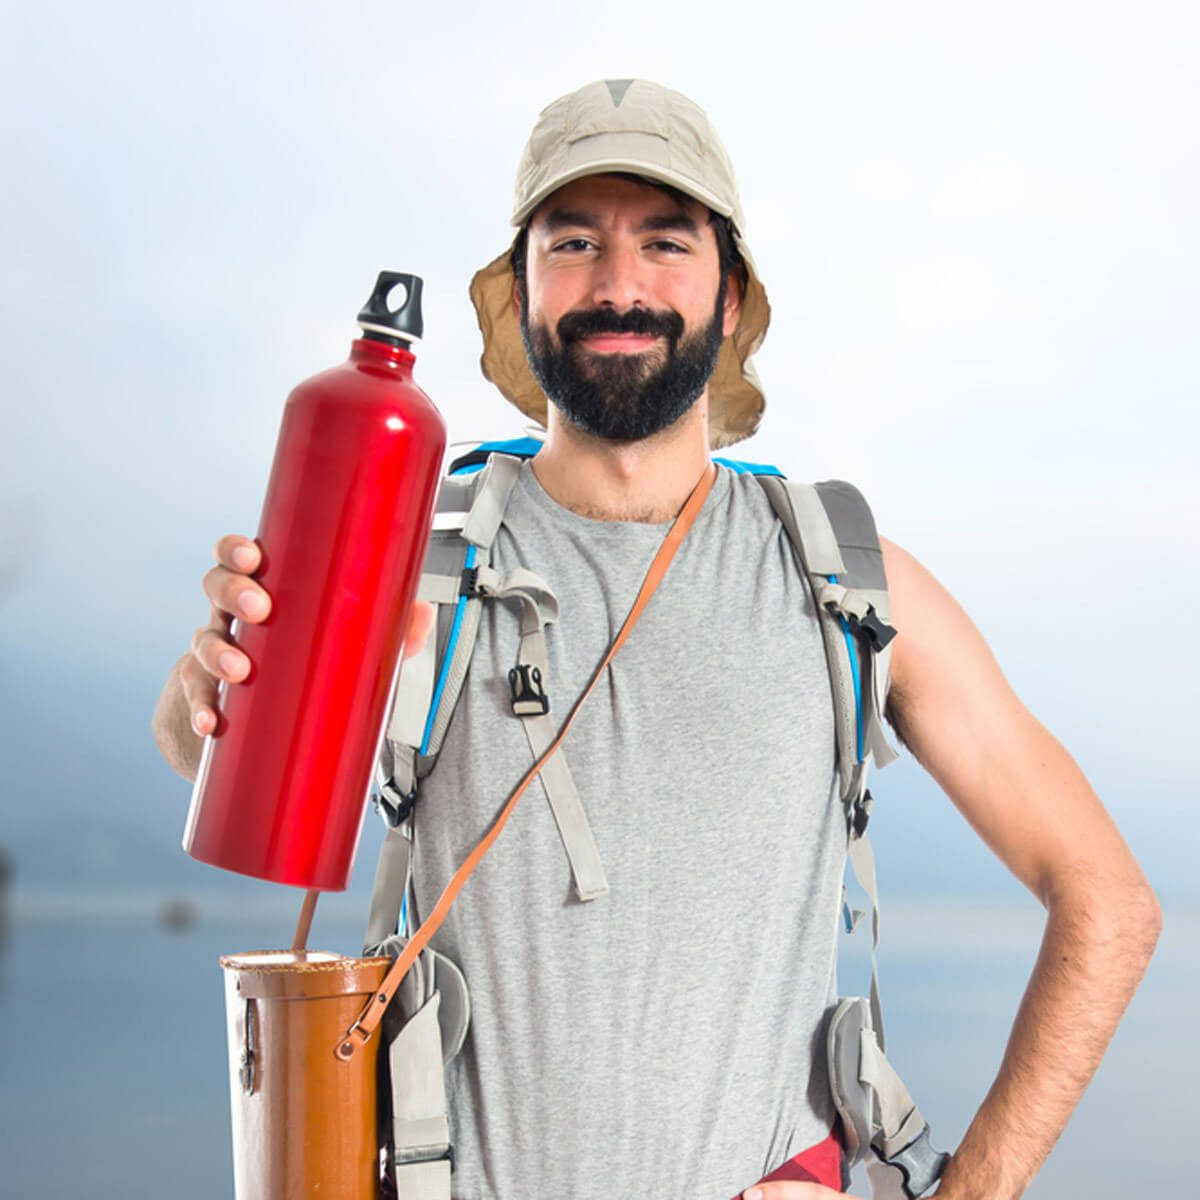 guy with water bottle